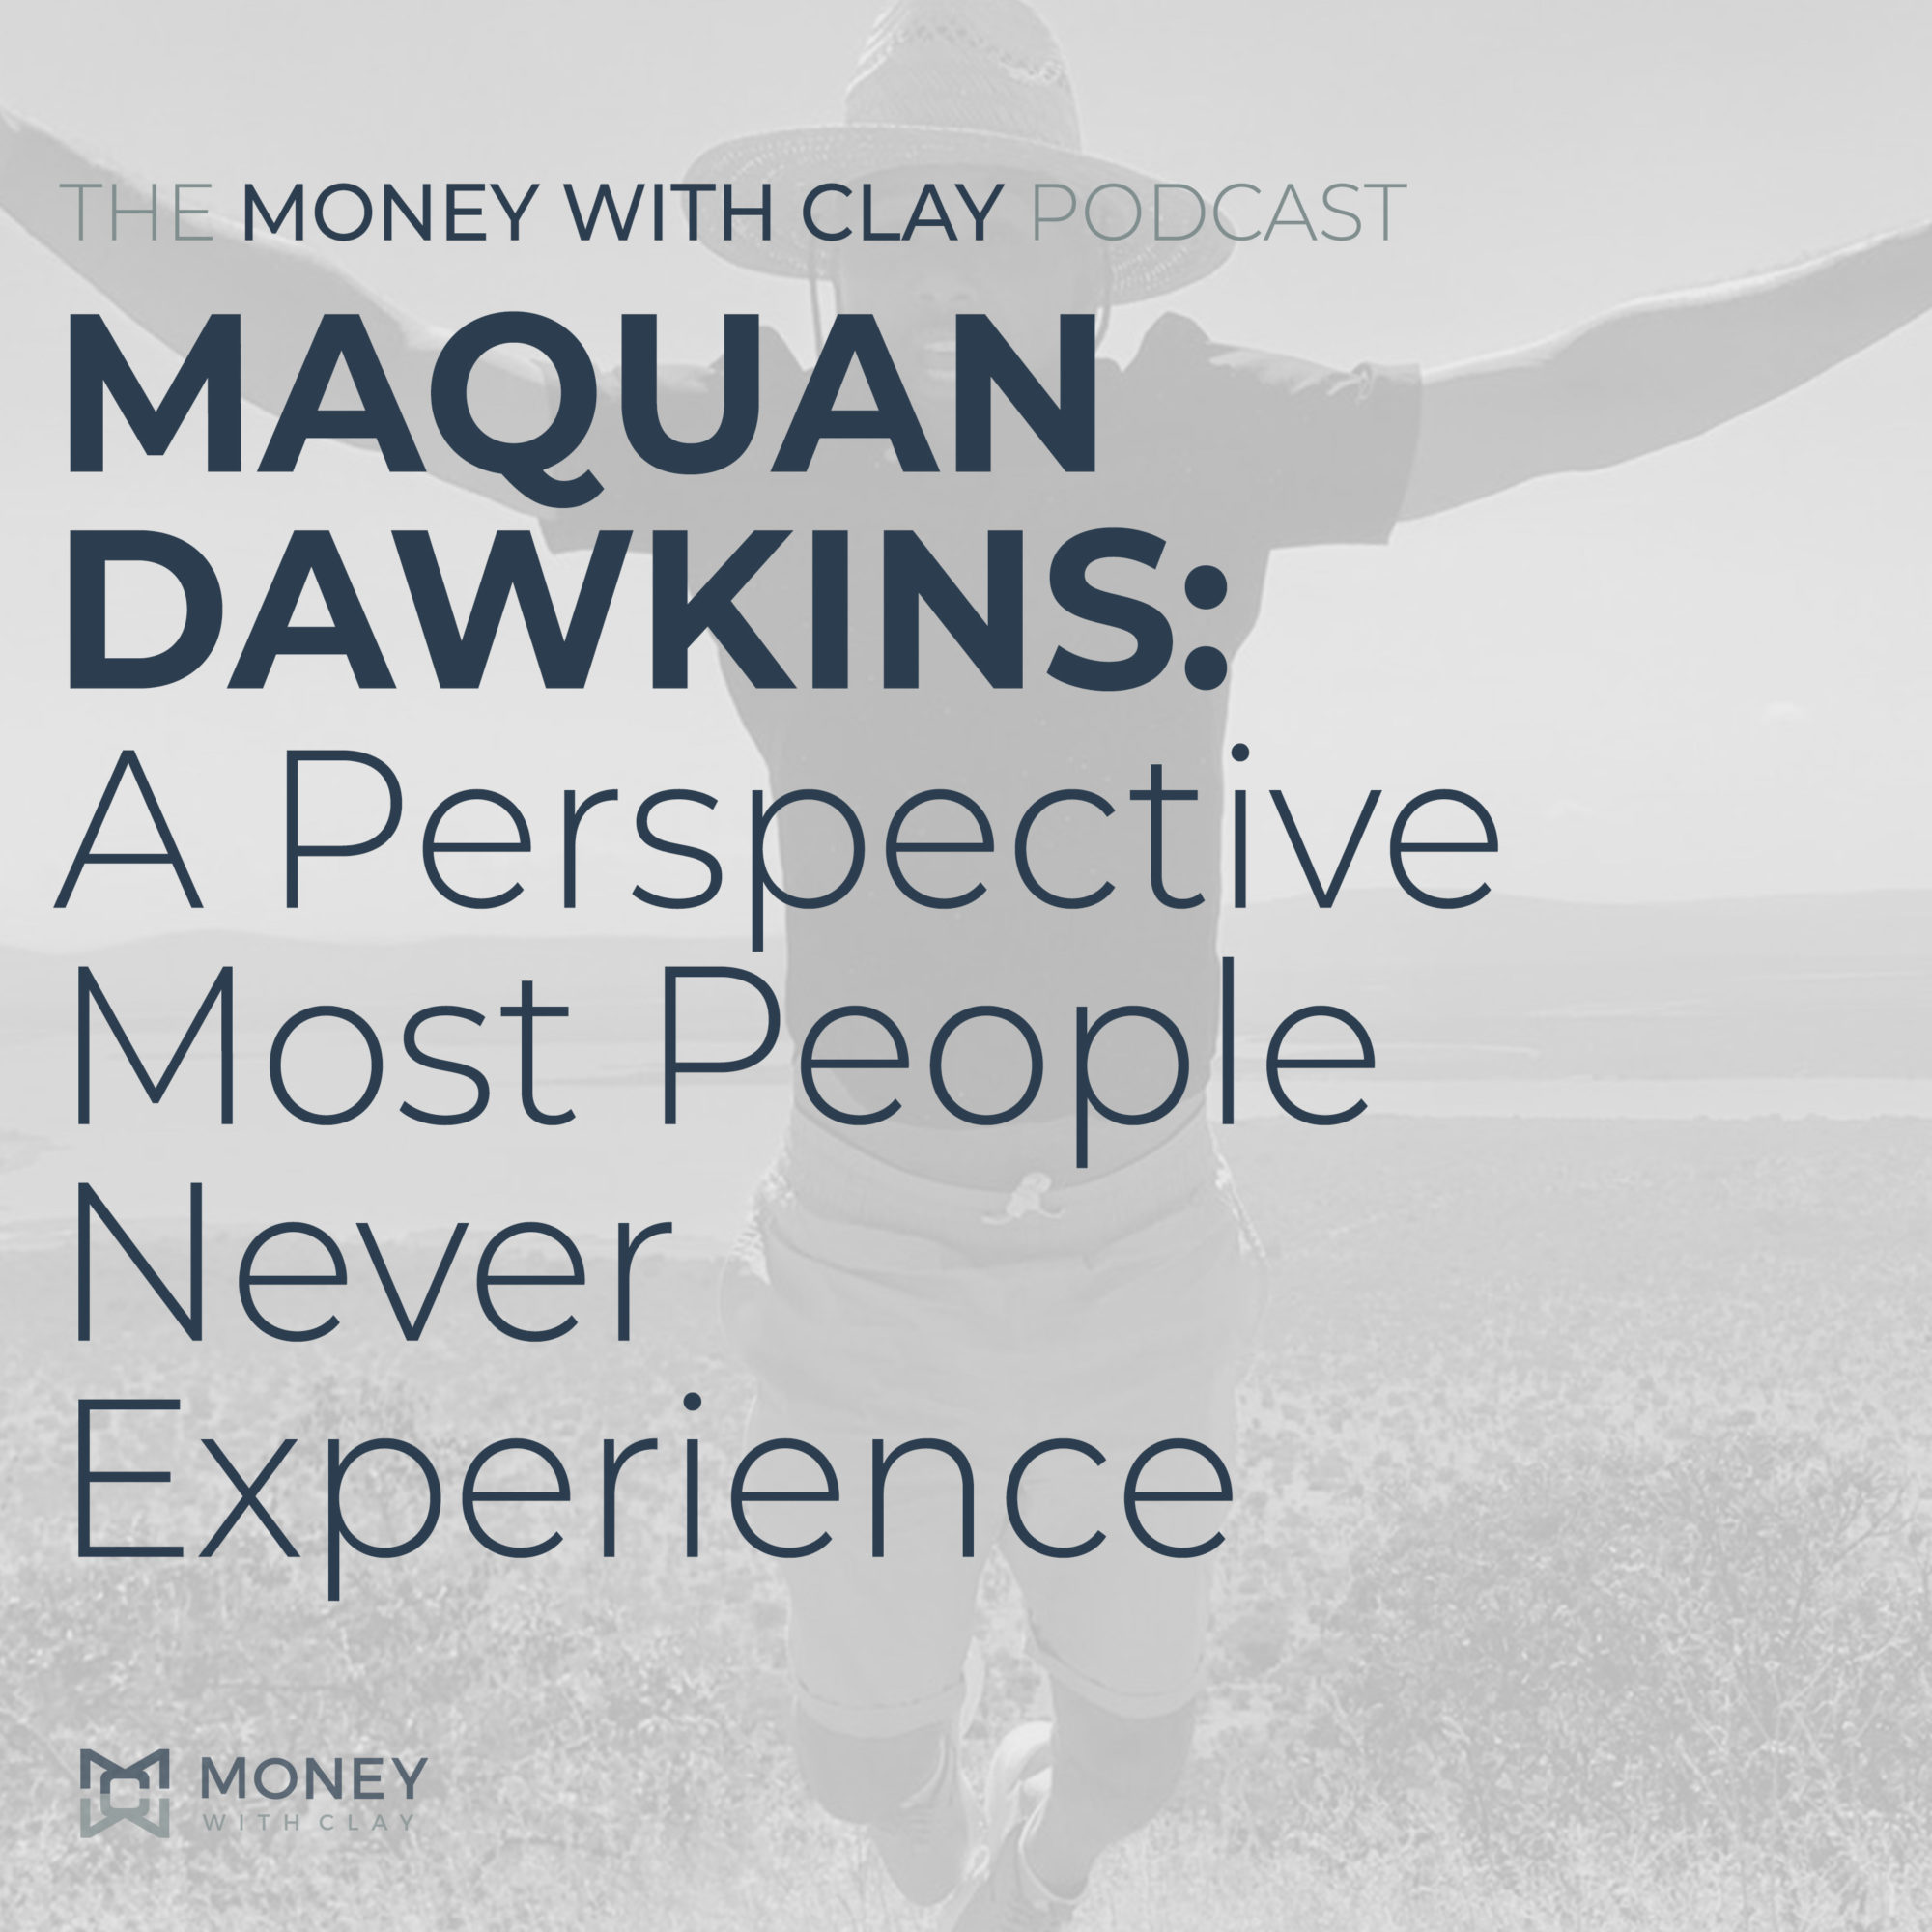 #047 - Maquan Dawkins: A Perspective Most People Never Experience